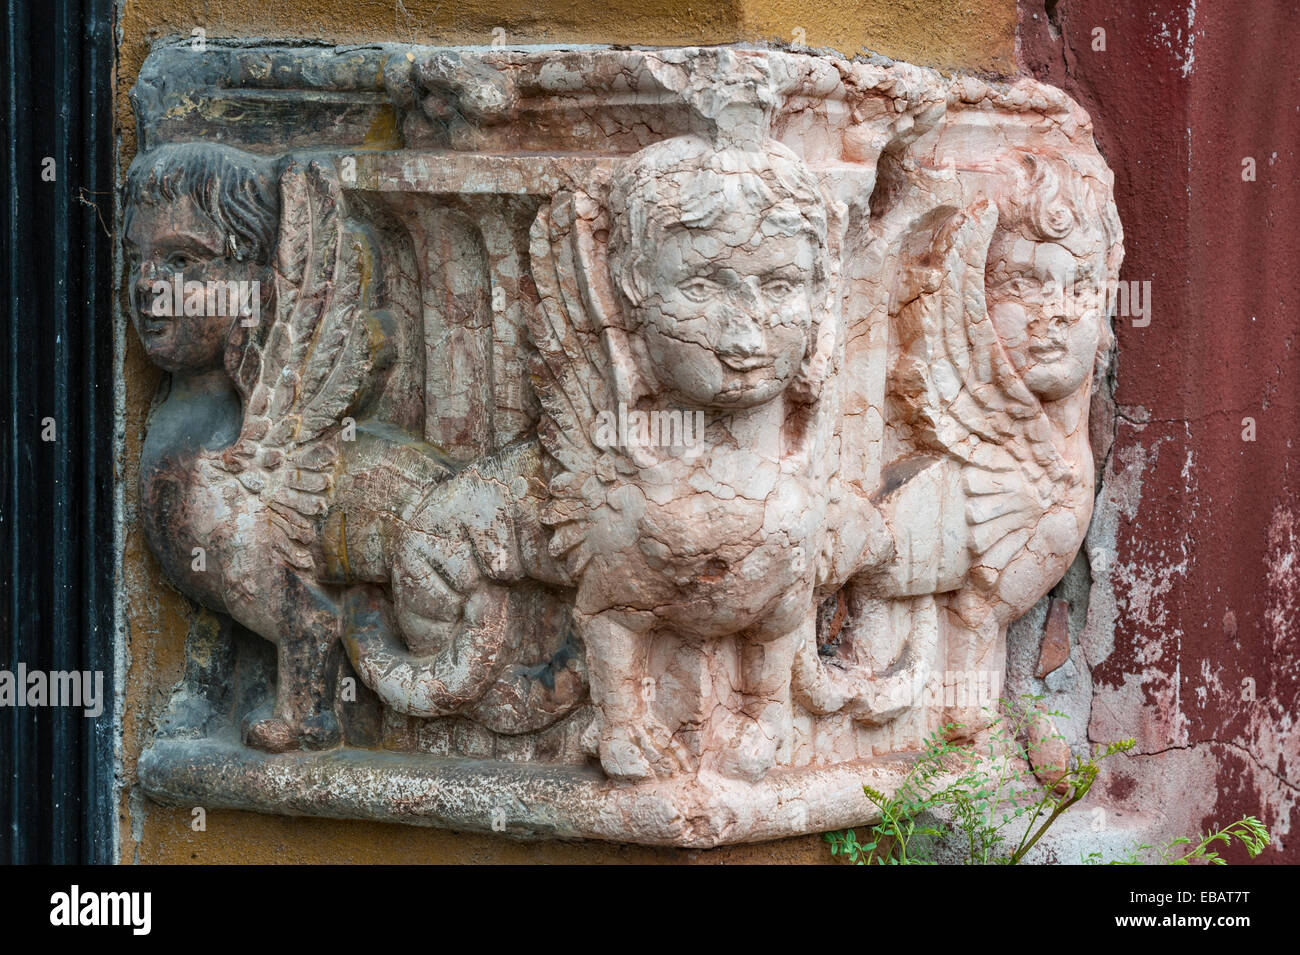 The gardens at the Giardino Giusti, Verona, Italy. Mythical creatures, possibly manticores, on an ancient Roman - Stock Image